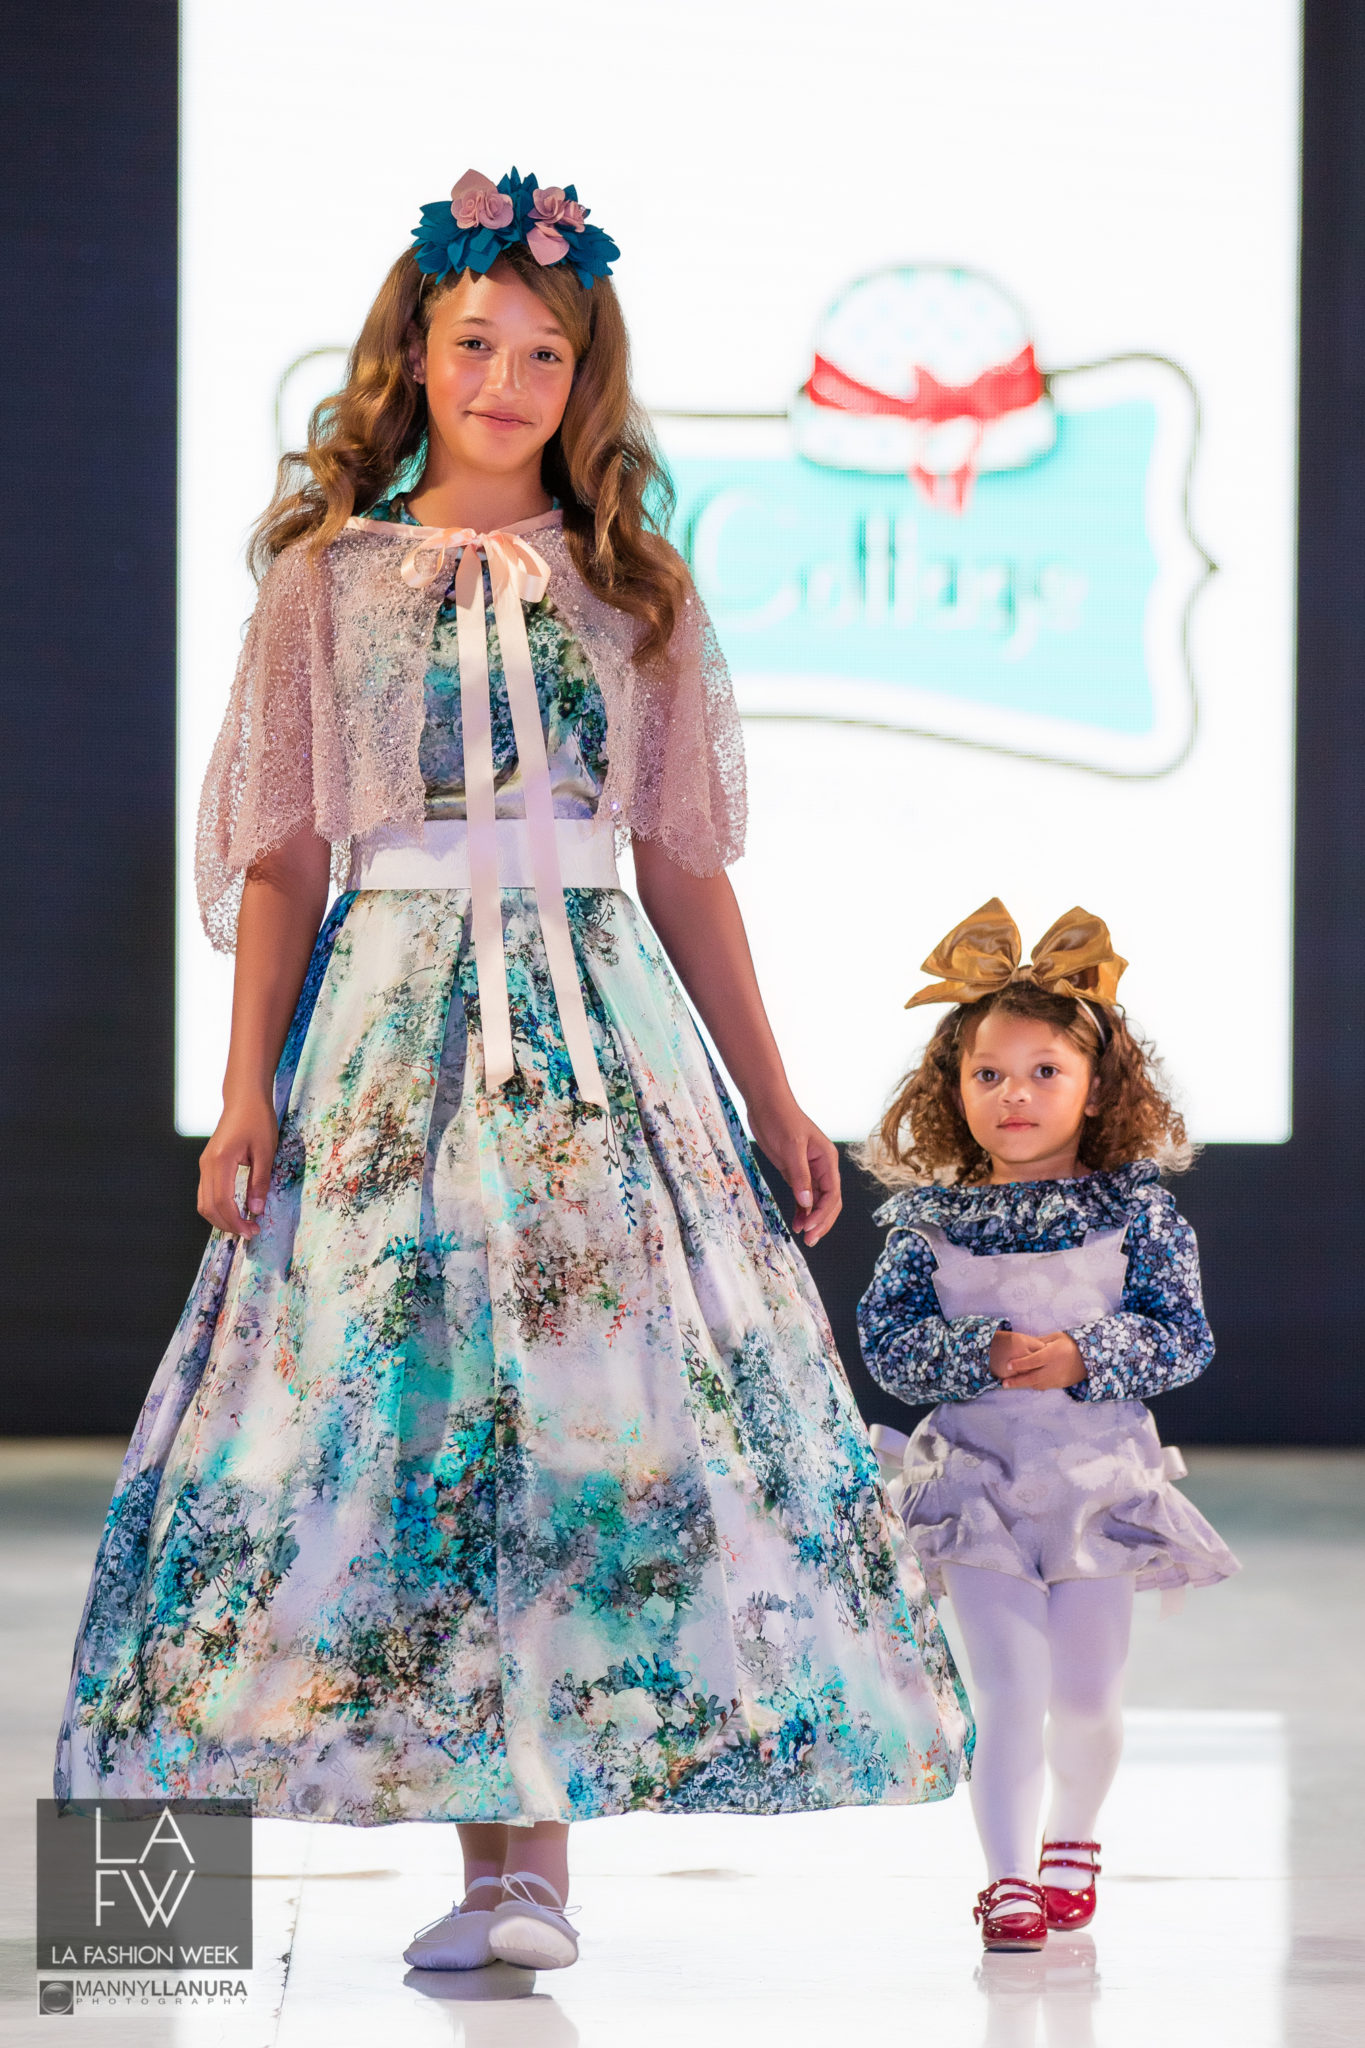 Rose Cottage Designs LAFW LA Fashion Week 2016